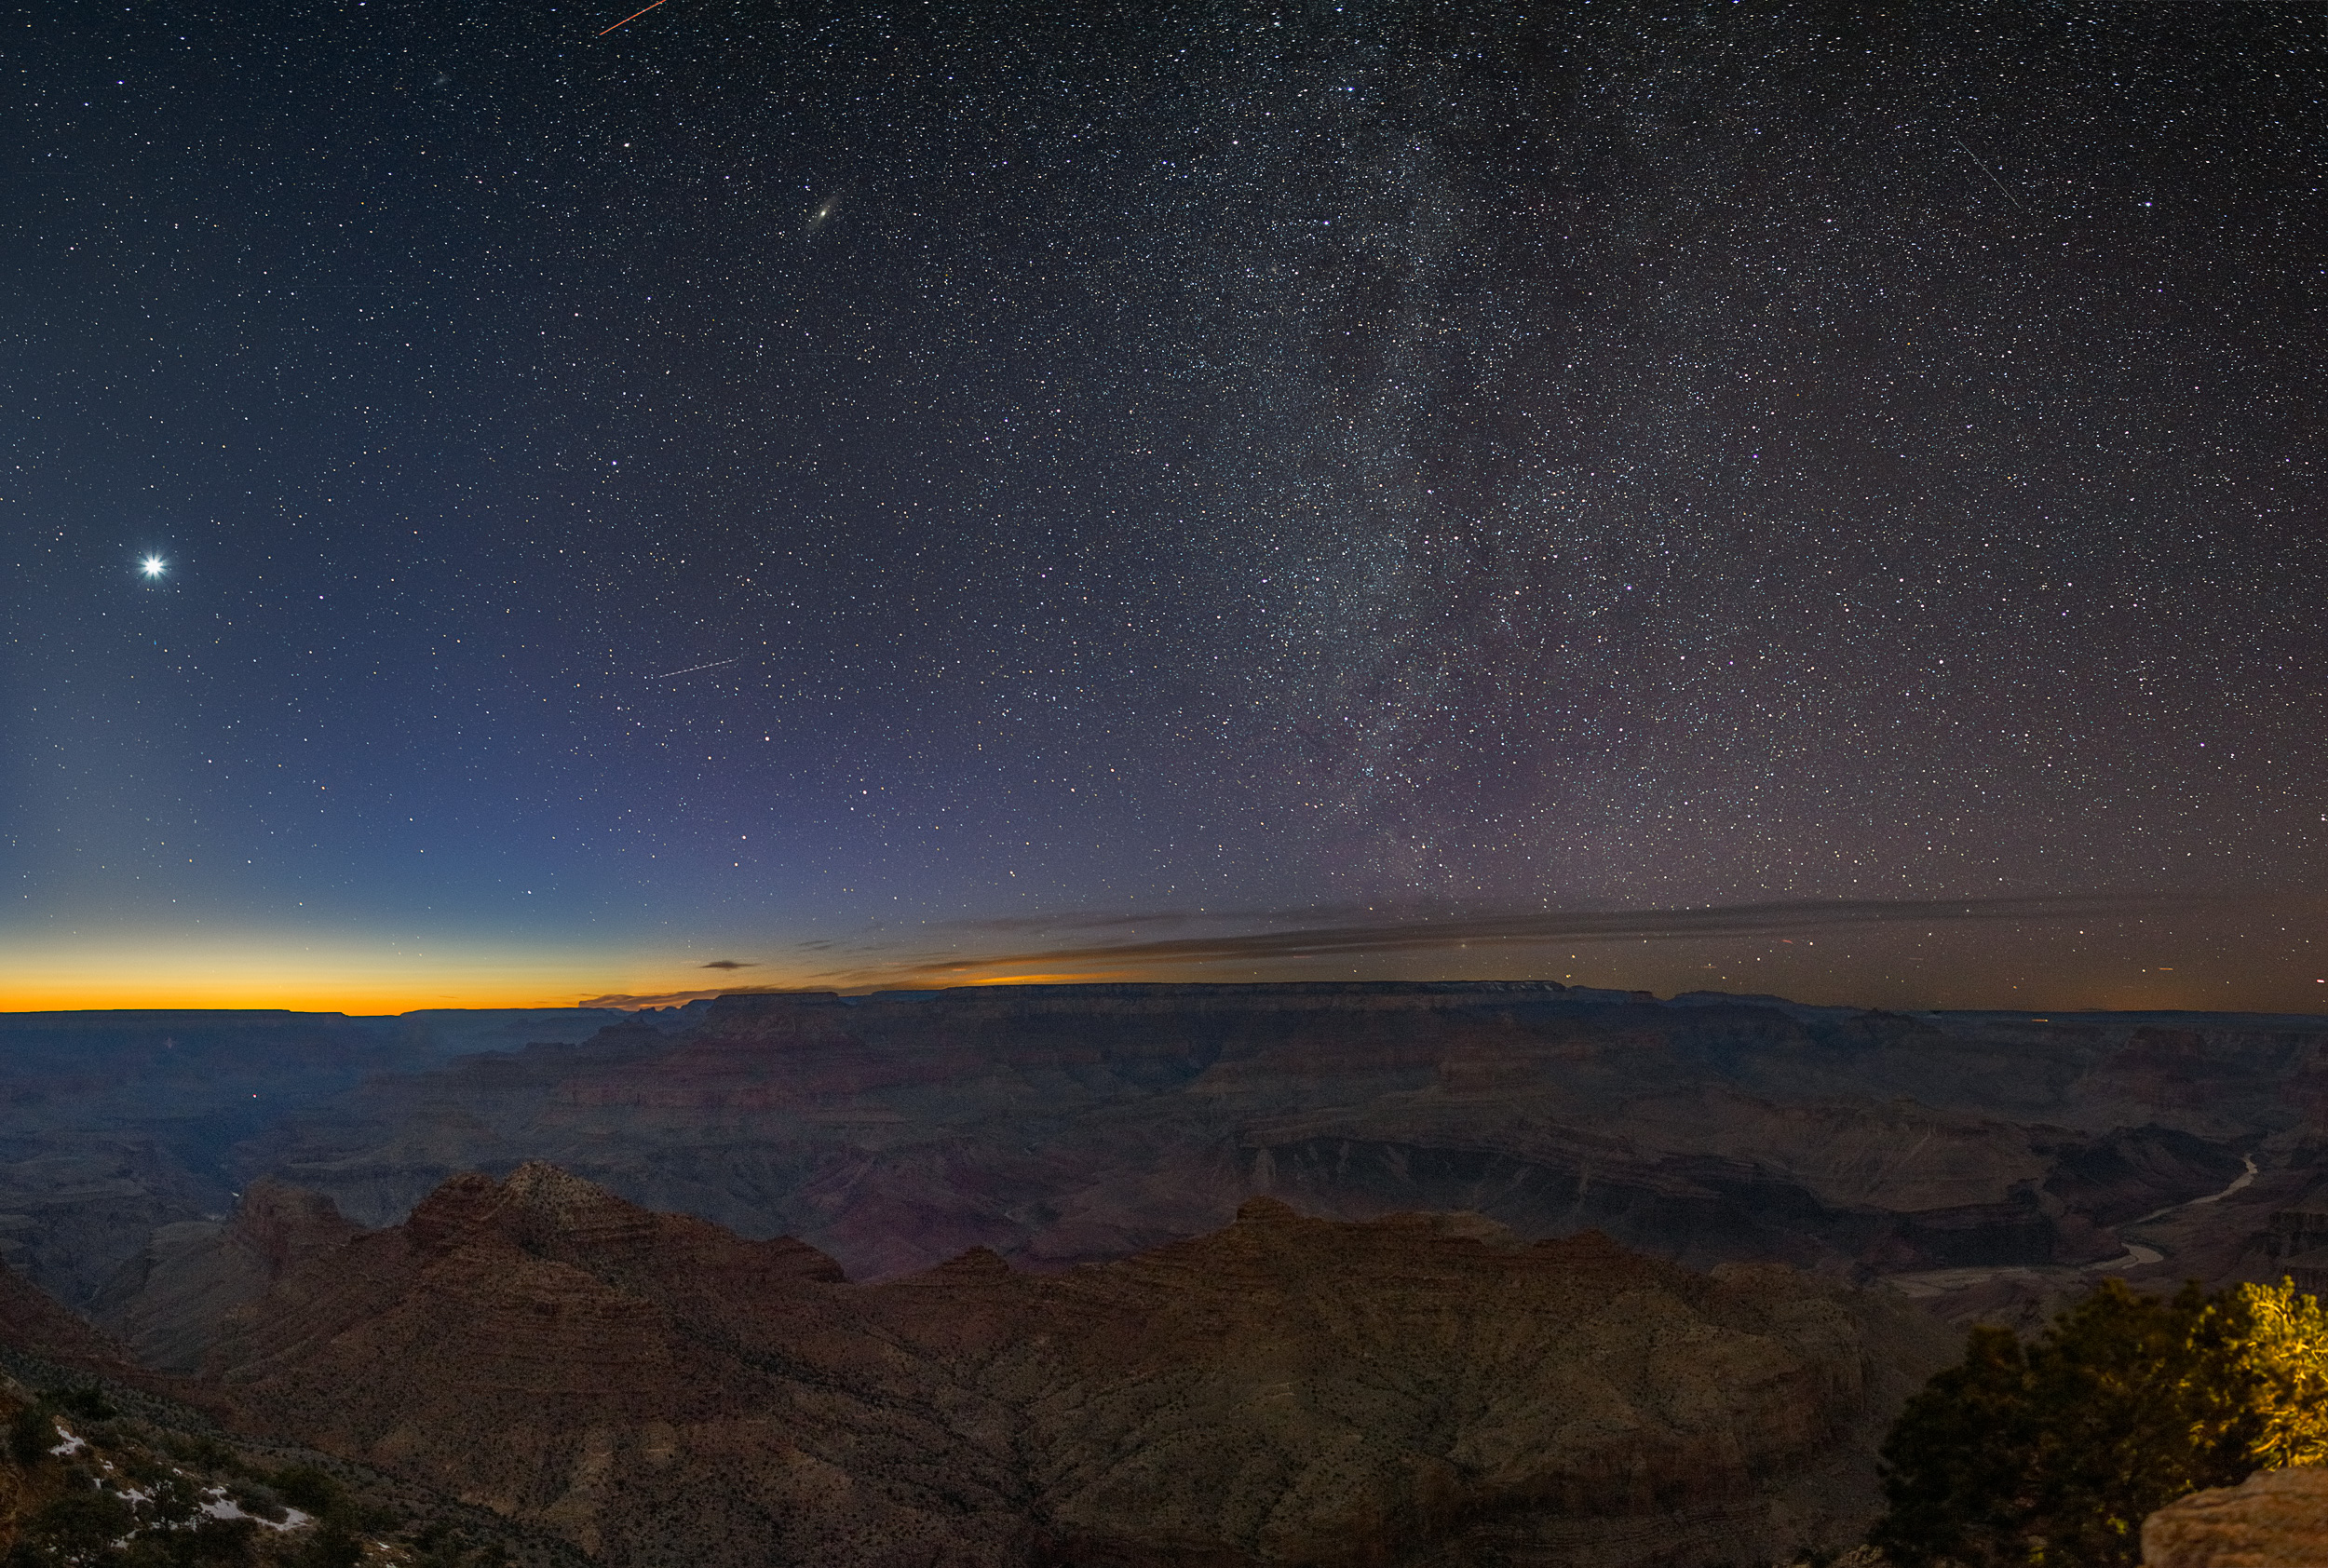 The winter Milky Way from Desert View, Grand Canyon. Look close and you can see Andromeda in the top center.